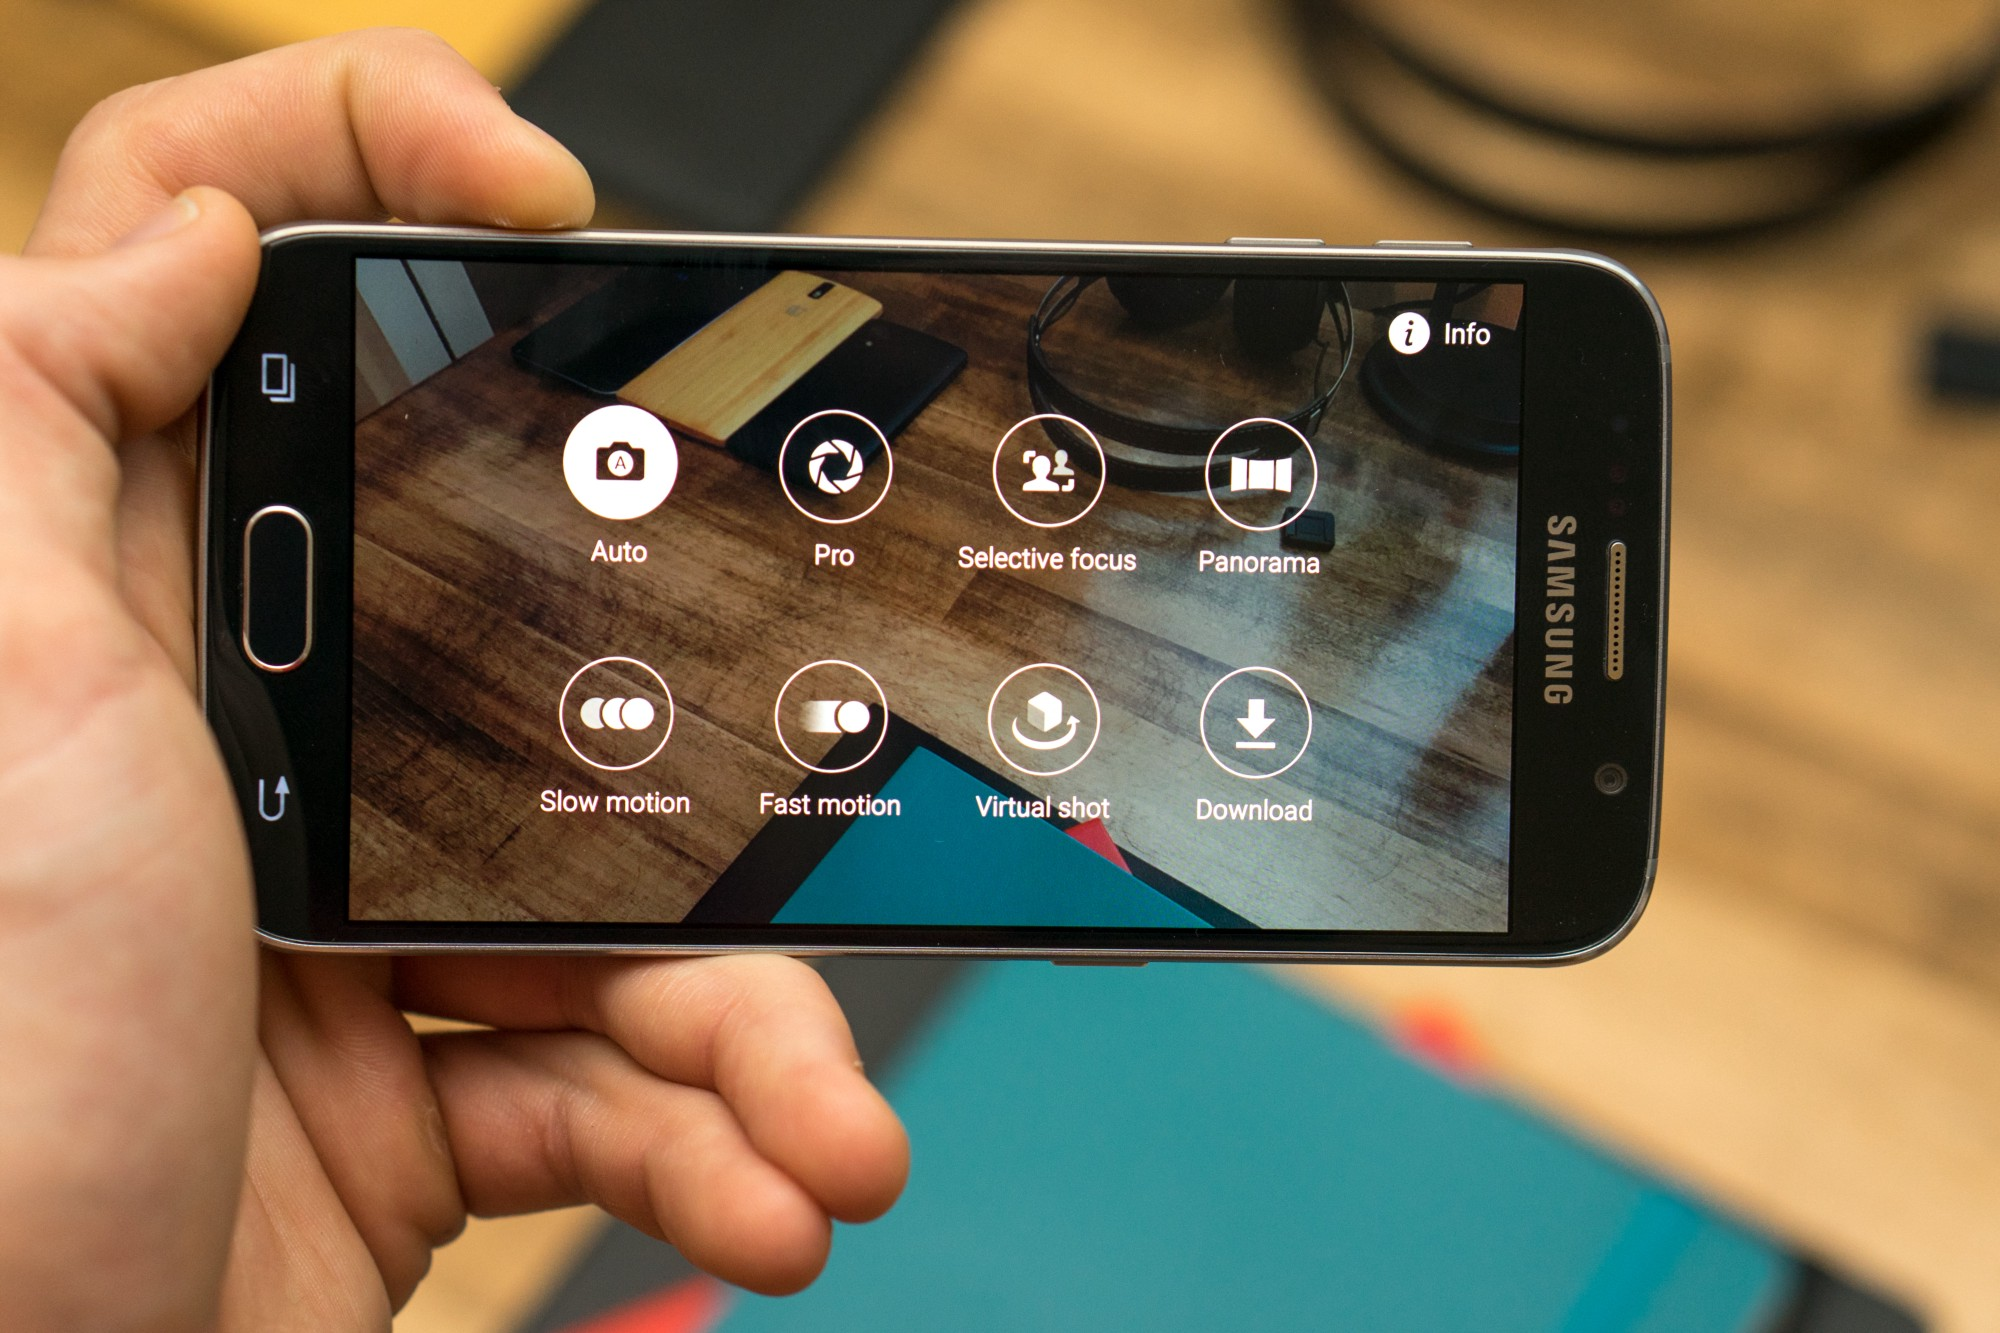 samsung galaxy s6 review camera